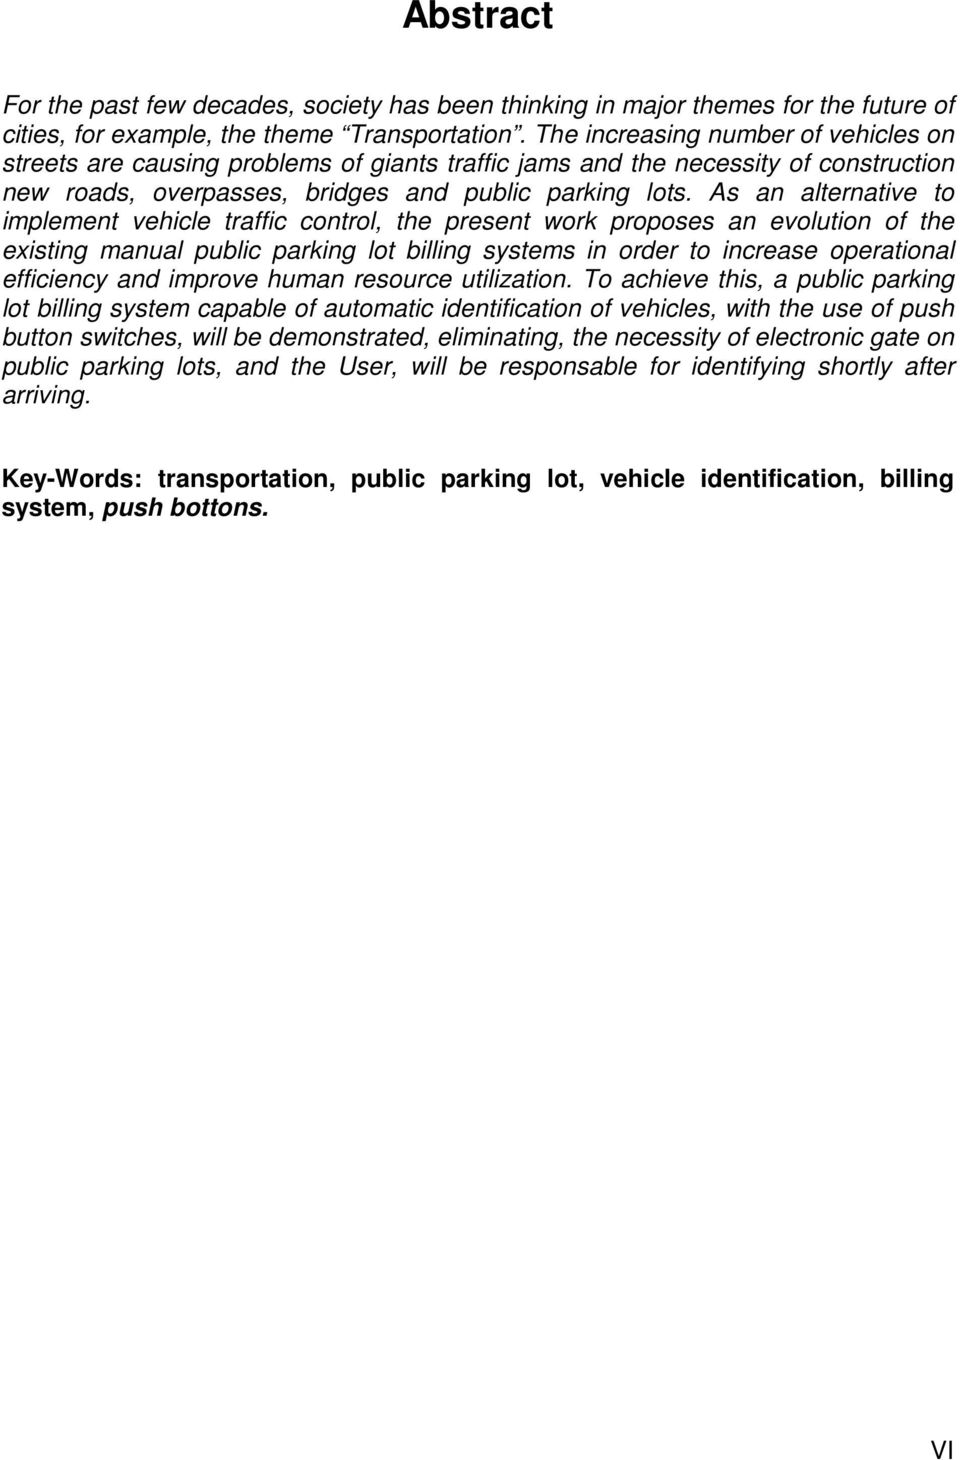 As an alternative to implement vehicle traffic control, the present work proposes an evolution of the existing manual public parking lot billing systems in order to increase operational efficiency